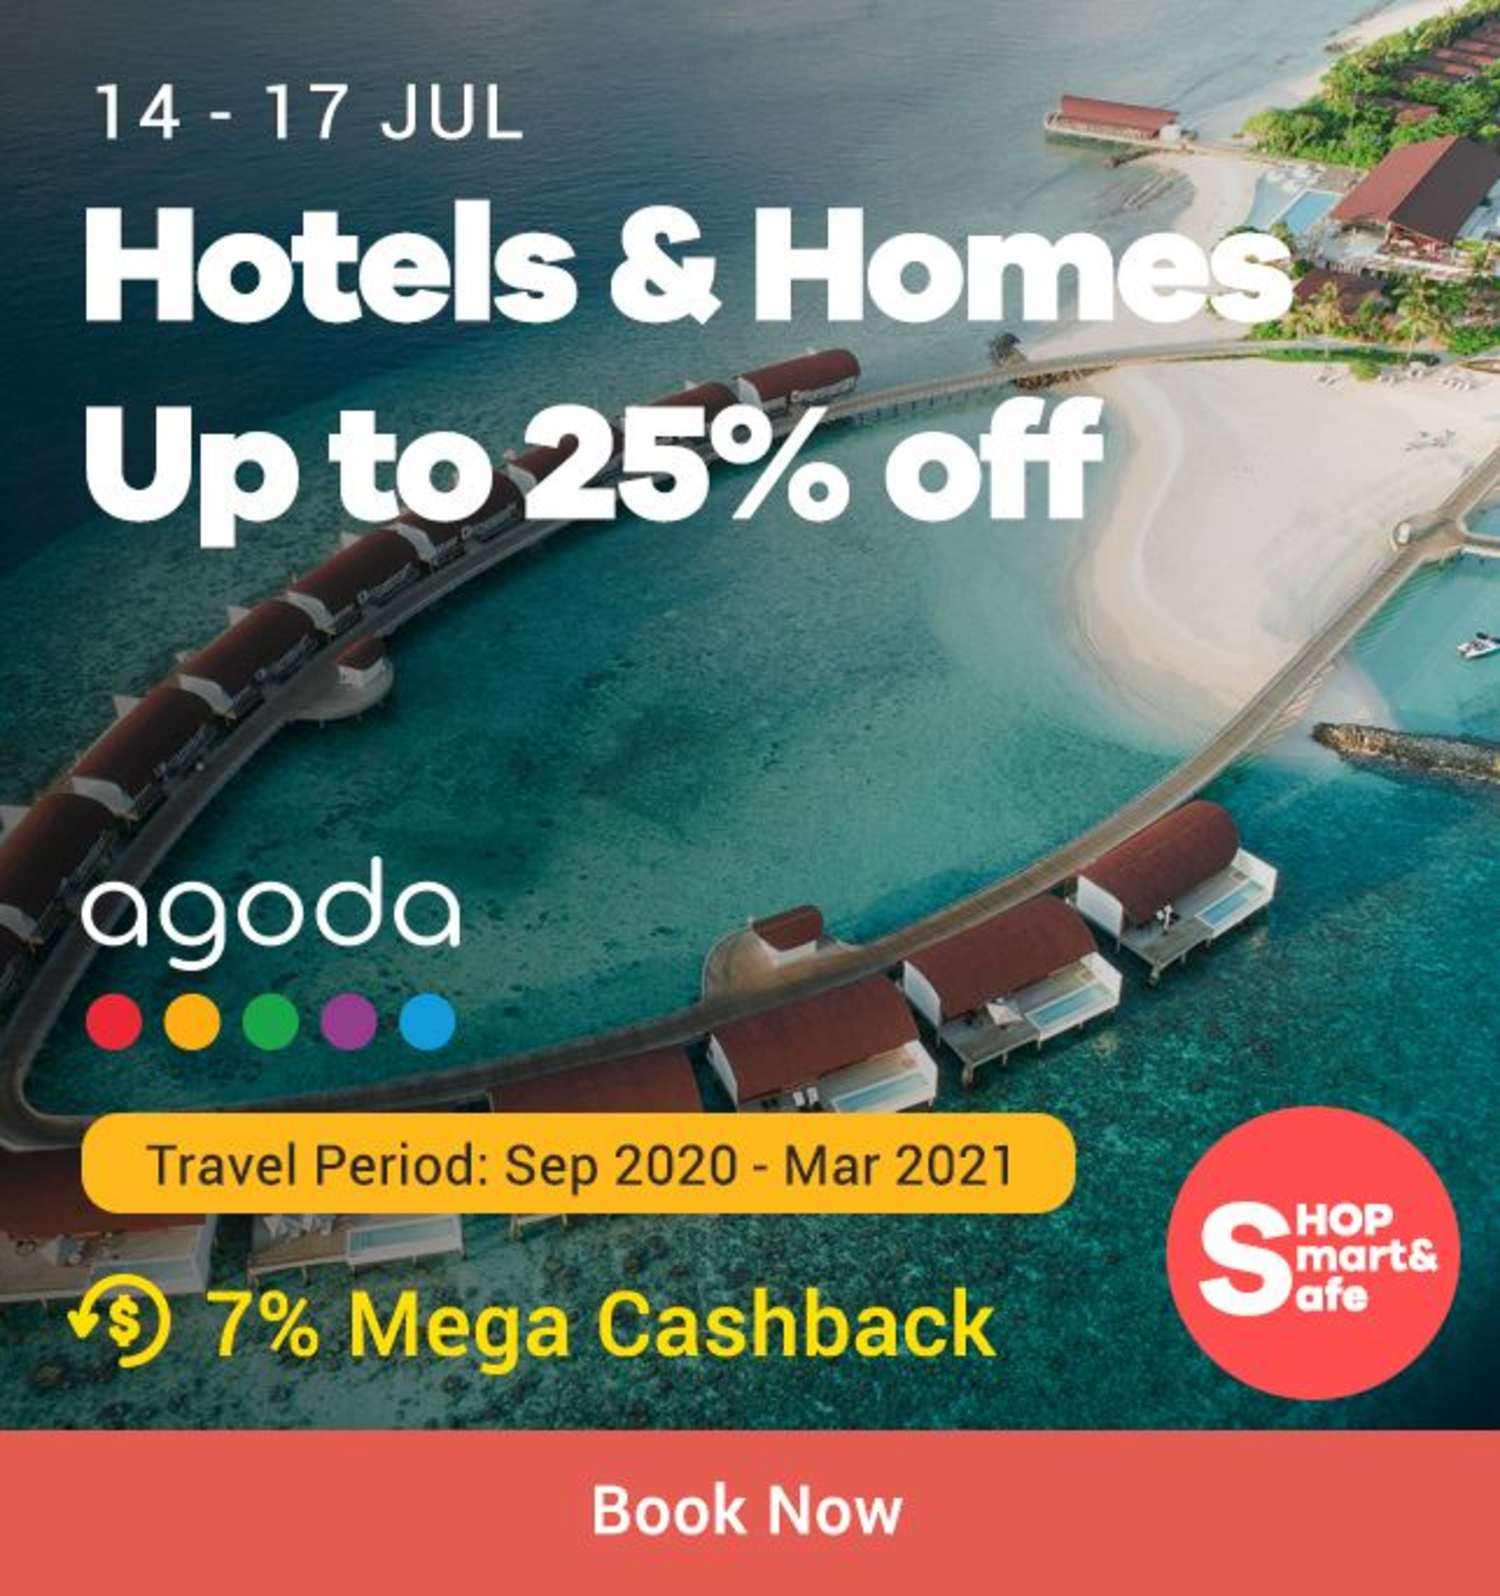 Agoda: Hotels & Homes Up to 25% off